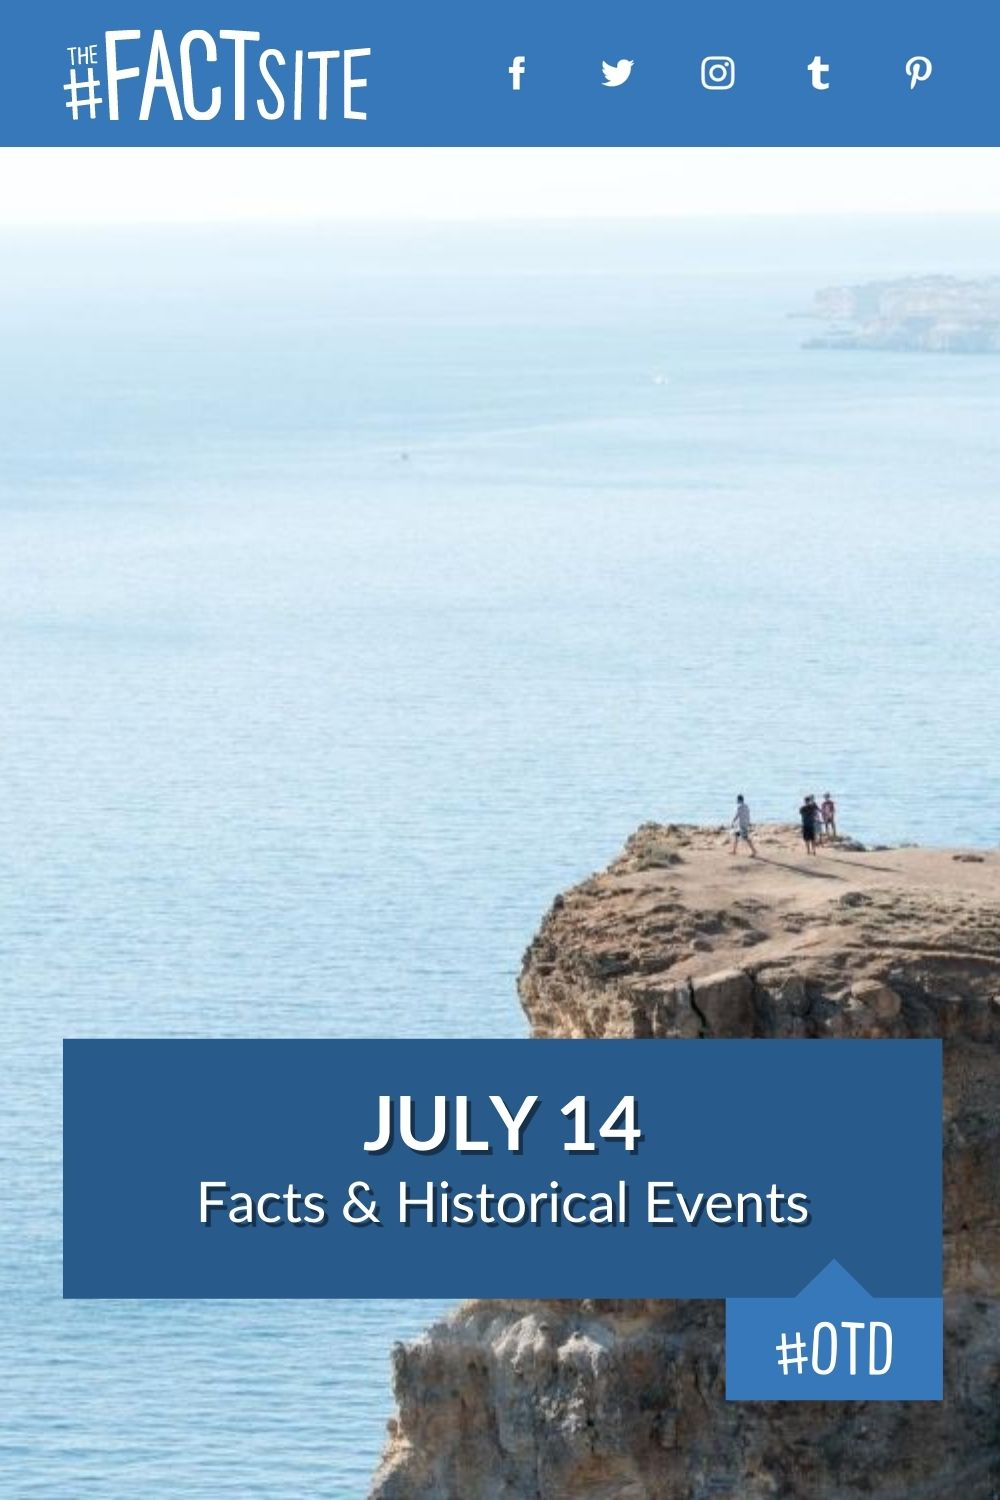 Facts & Historic Events That Happened on July 14